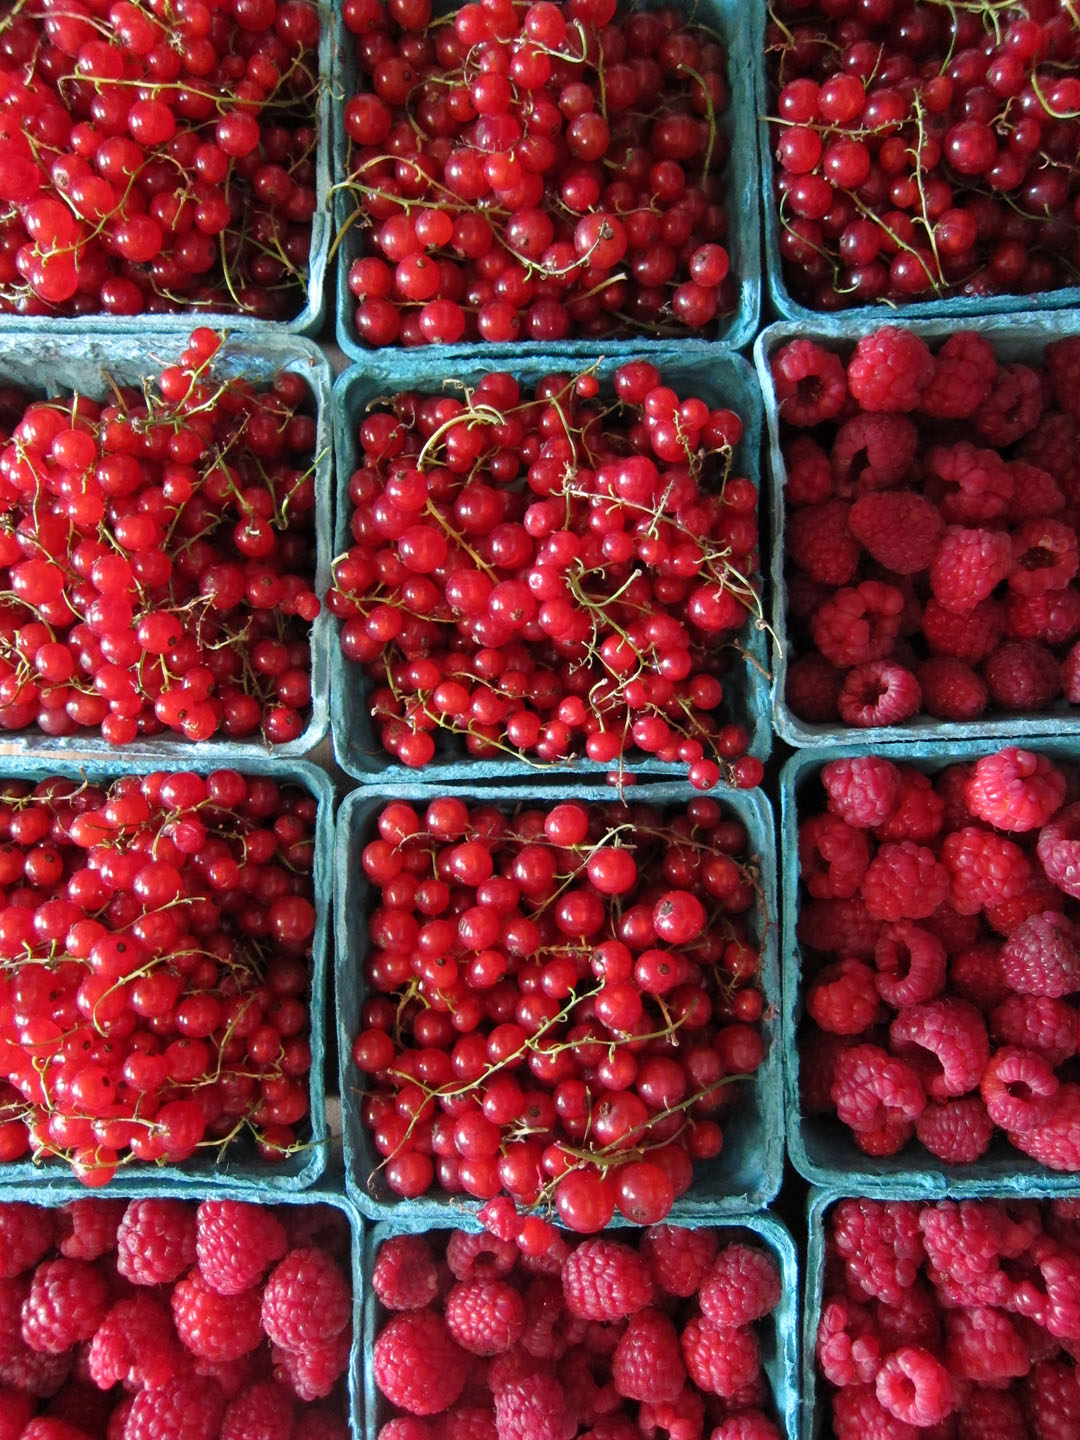 List Of Red Fruits And Vegetables Red Fruits And Vegetables List